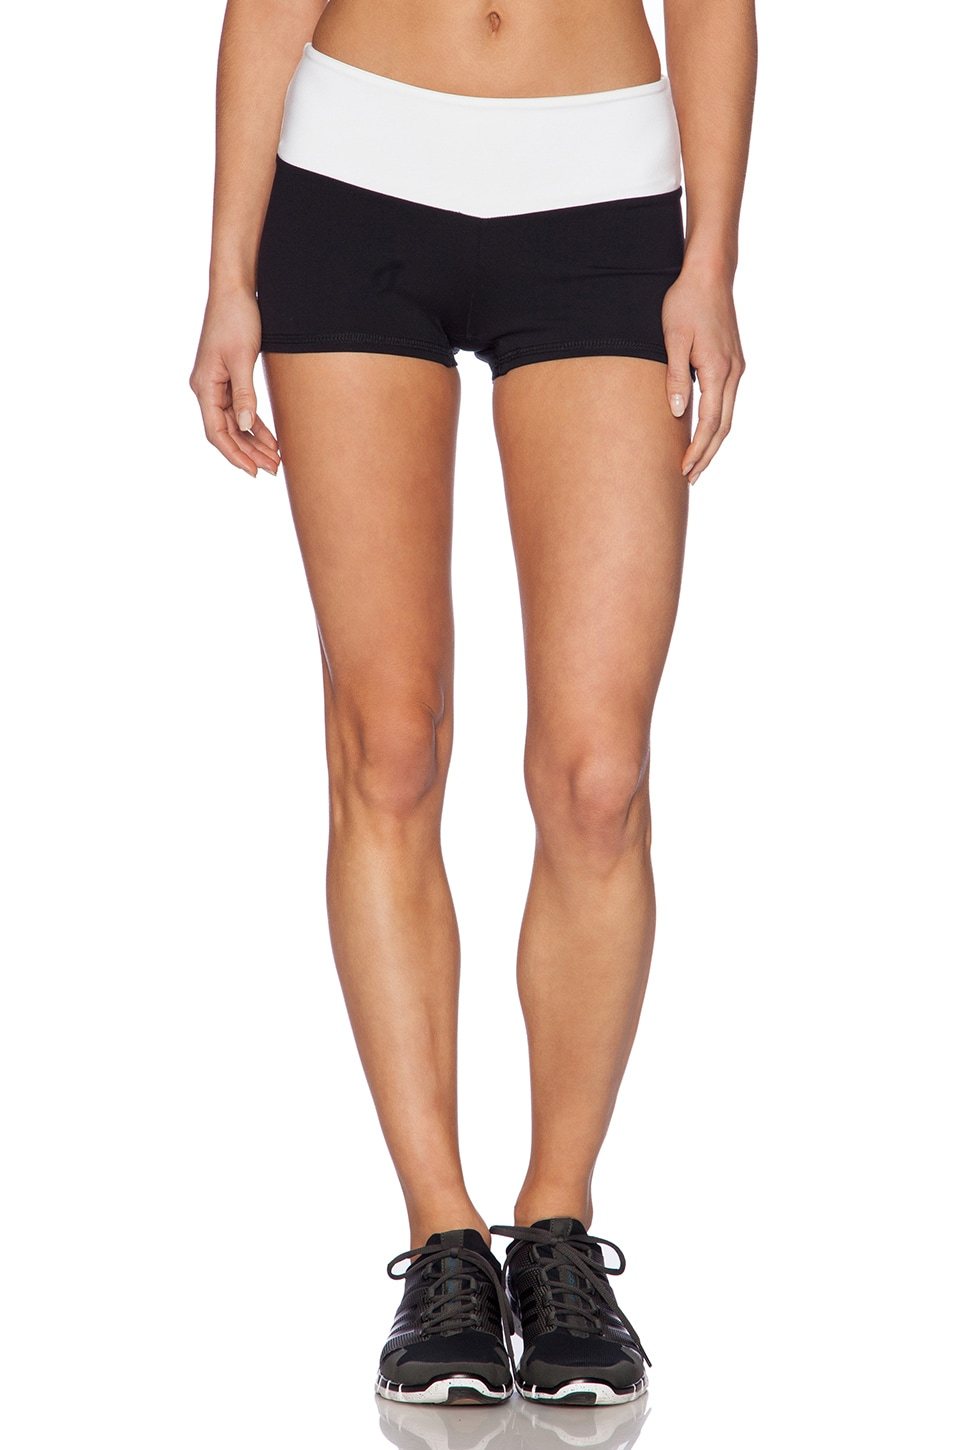 SOLOW Eclon Hot Yoga Contrast Short in Black/White